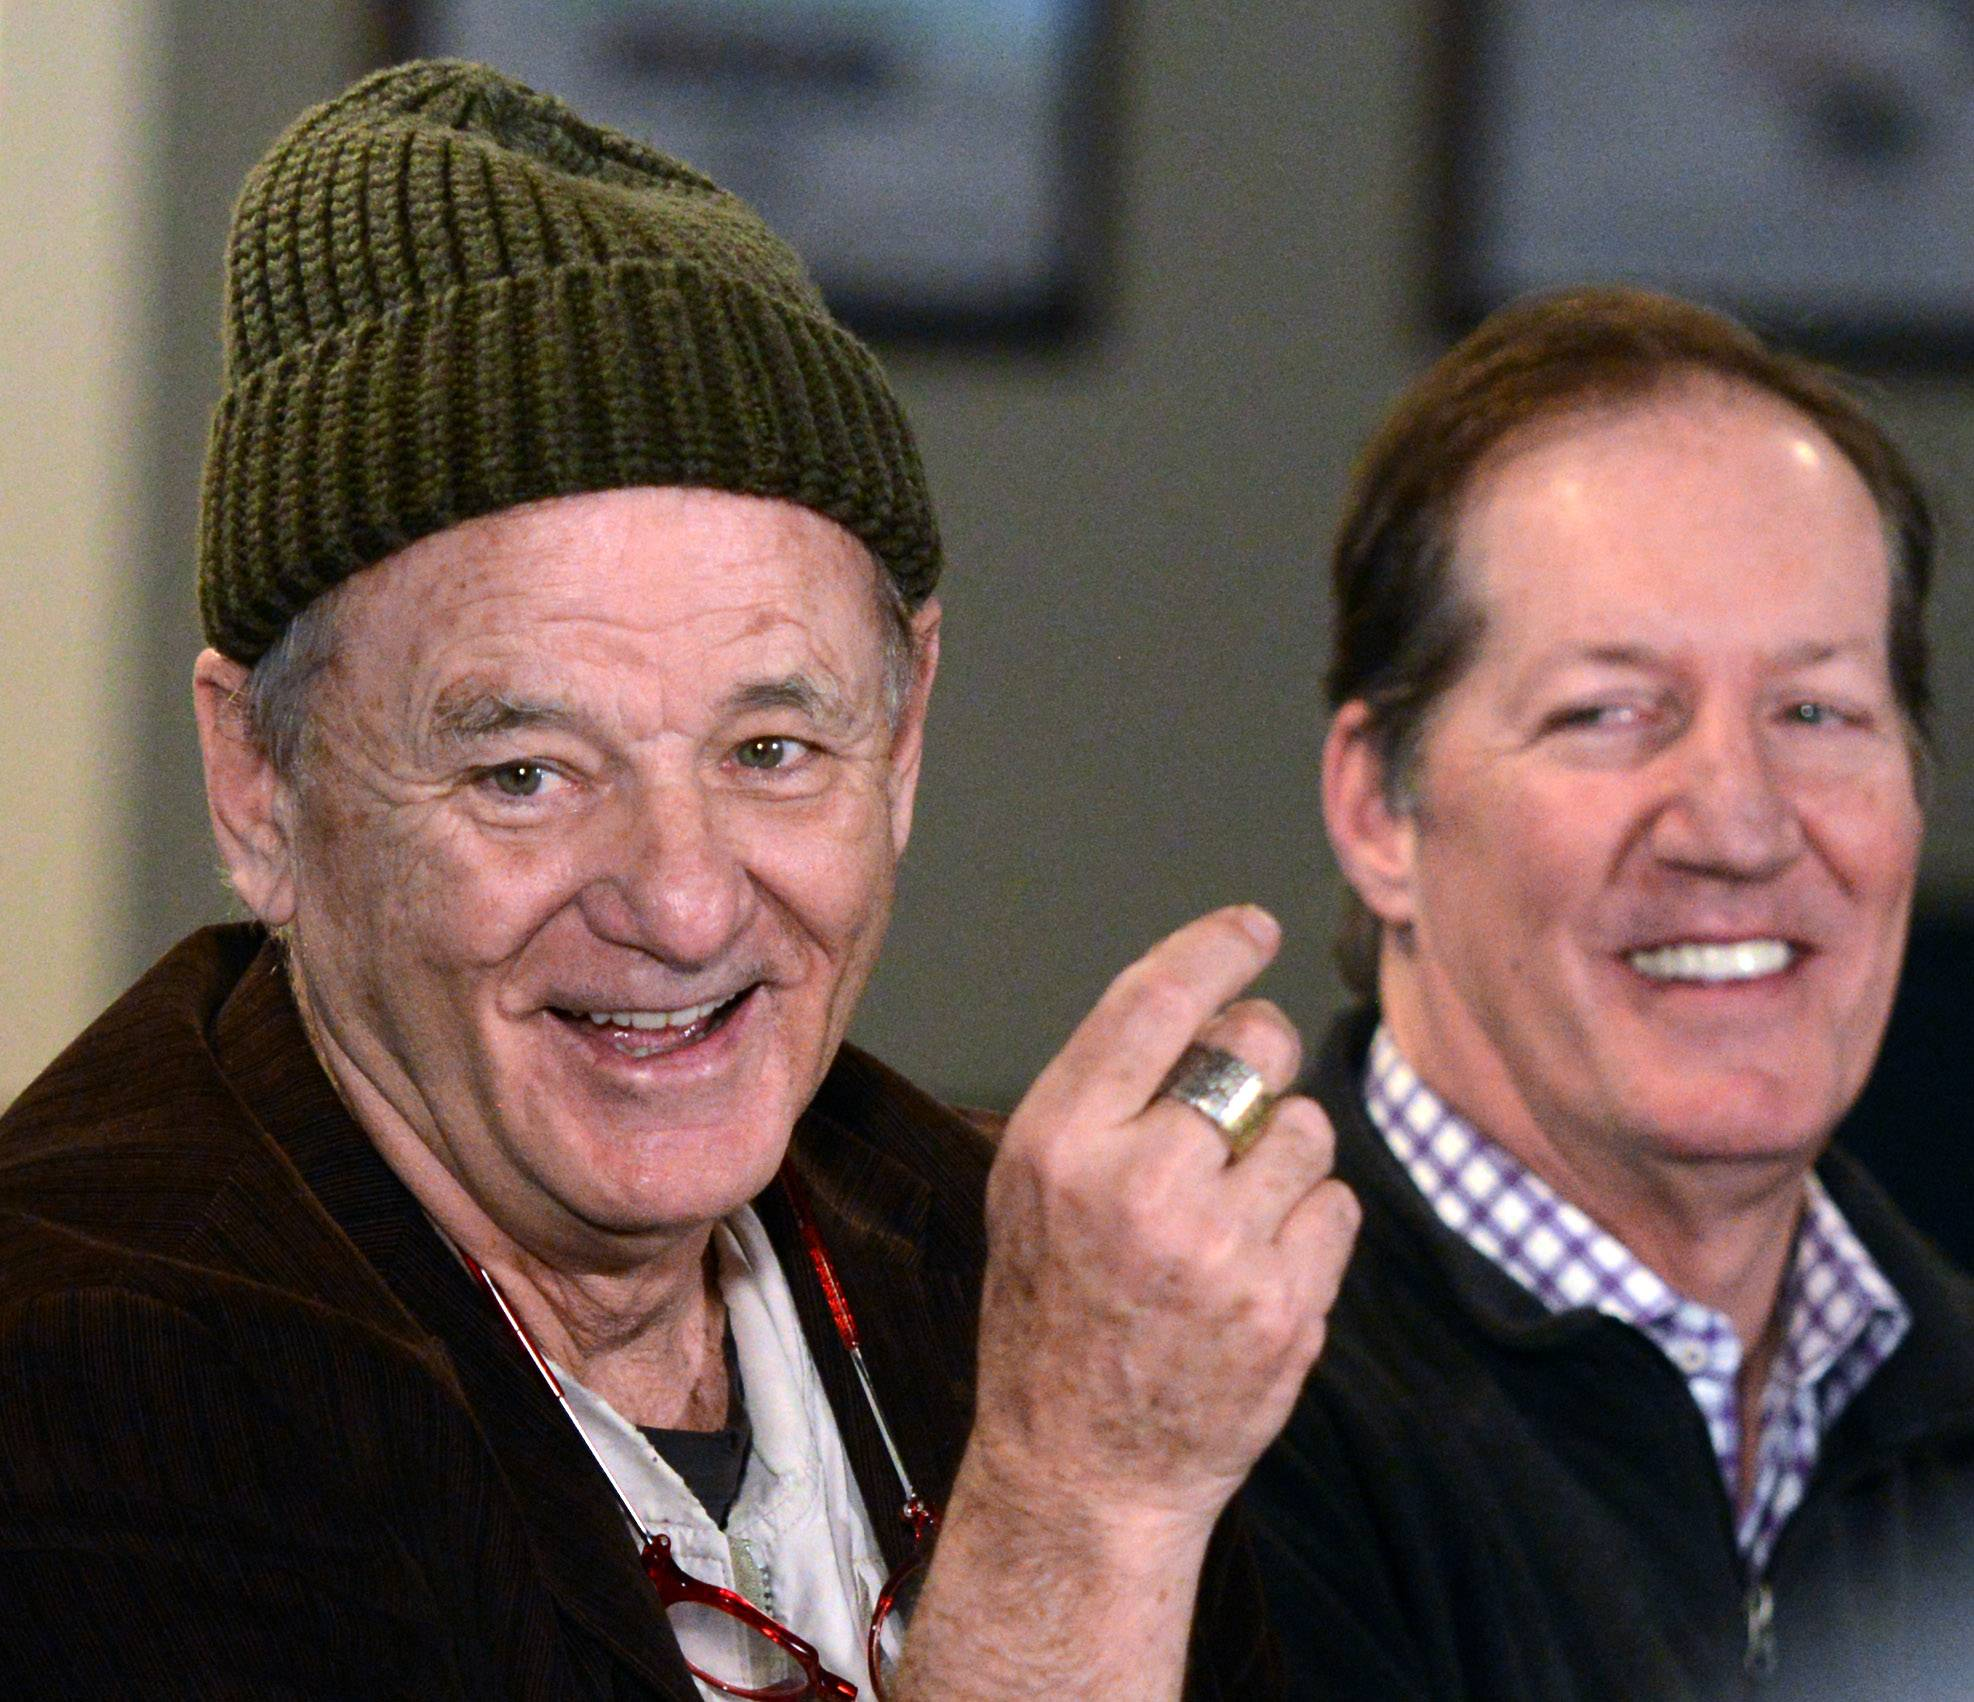 Bill Murray helps open his family's new 8,600-square-foot Murray Bros. Caddyshack sports bar in Rosemont onTuesday. Bar CEO Mac Haskell is at right.